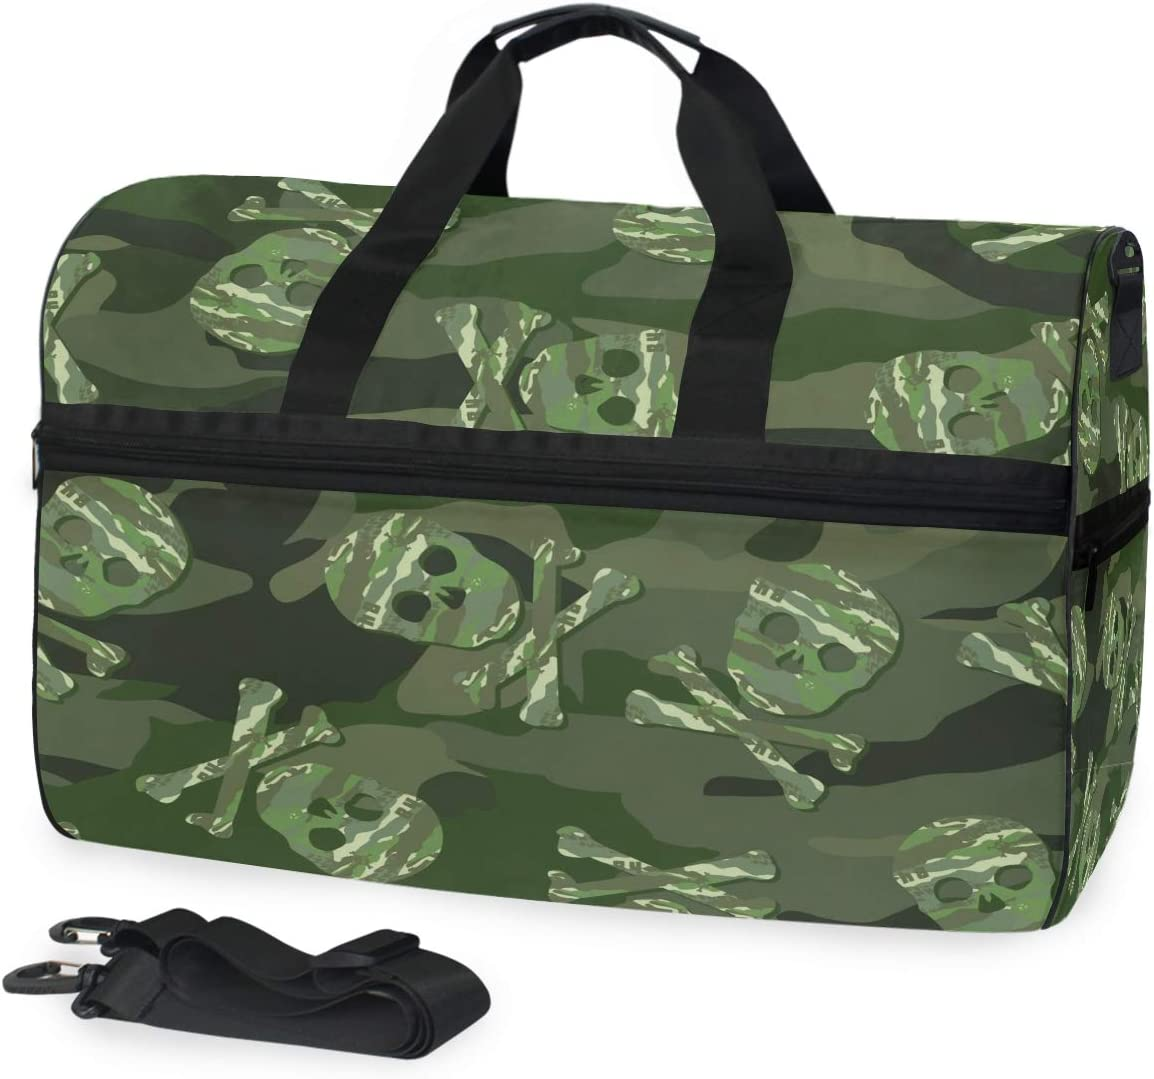 ALAZA Camouflage and Sugar Skull Sports Gym Duffel Bag Travel Luggage Handbag Shoulder Bag with Shoes Compartment for Men Women